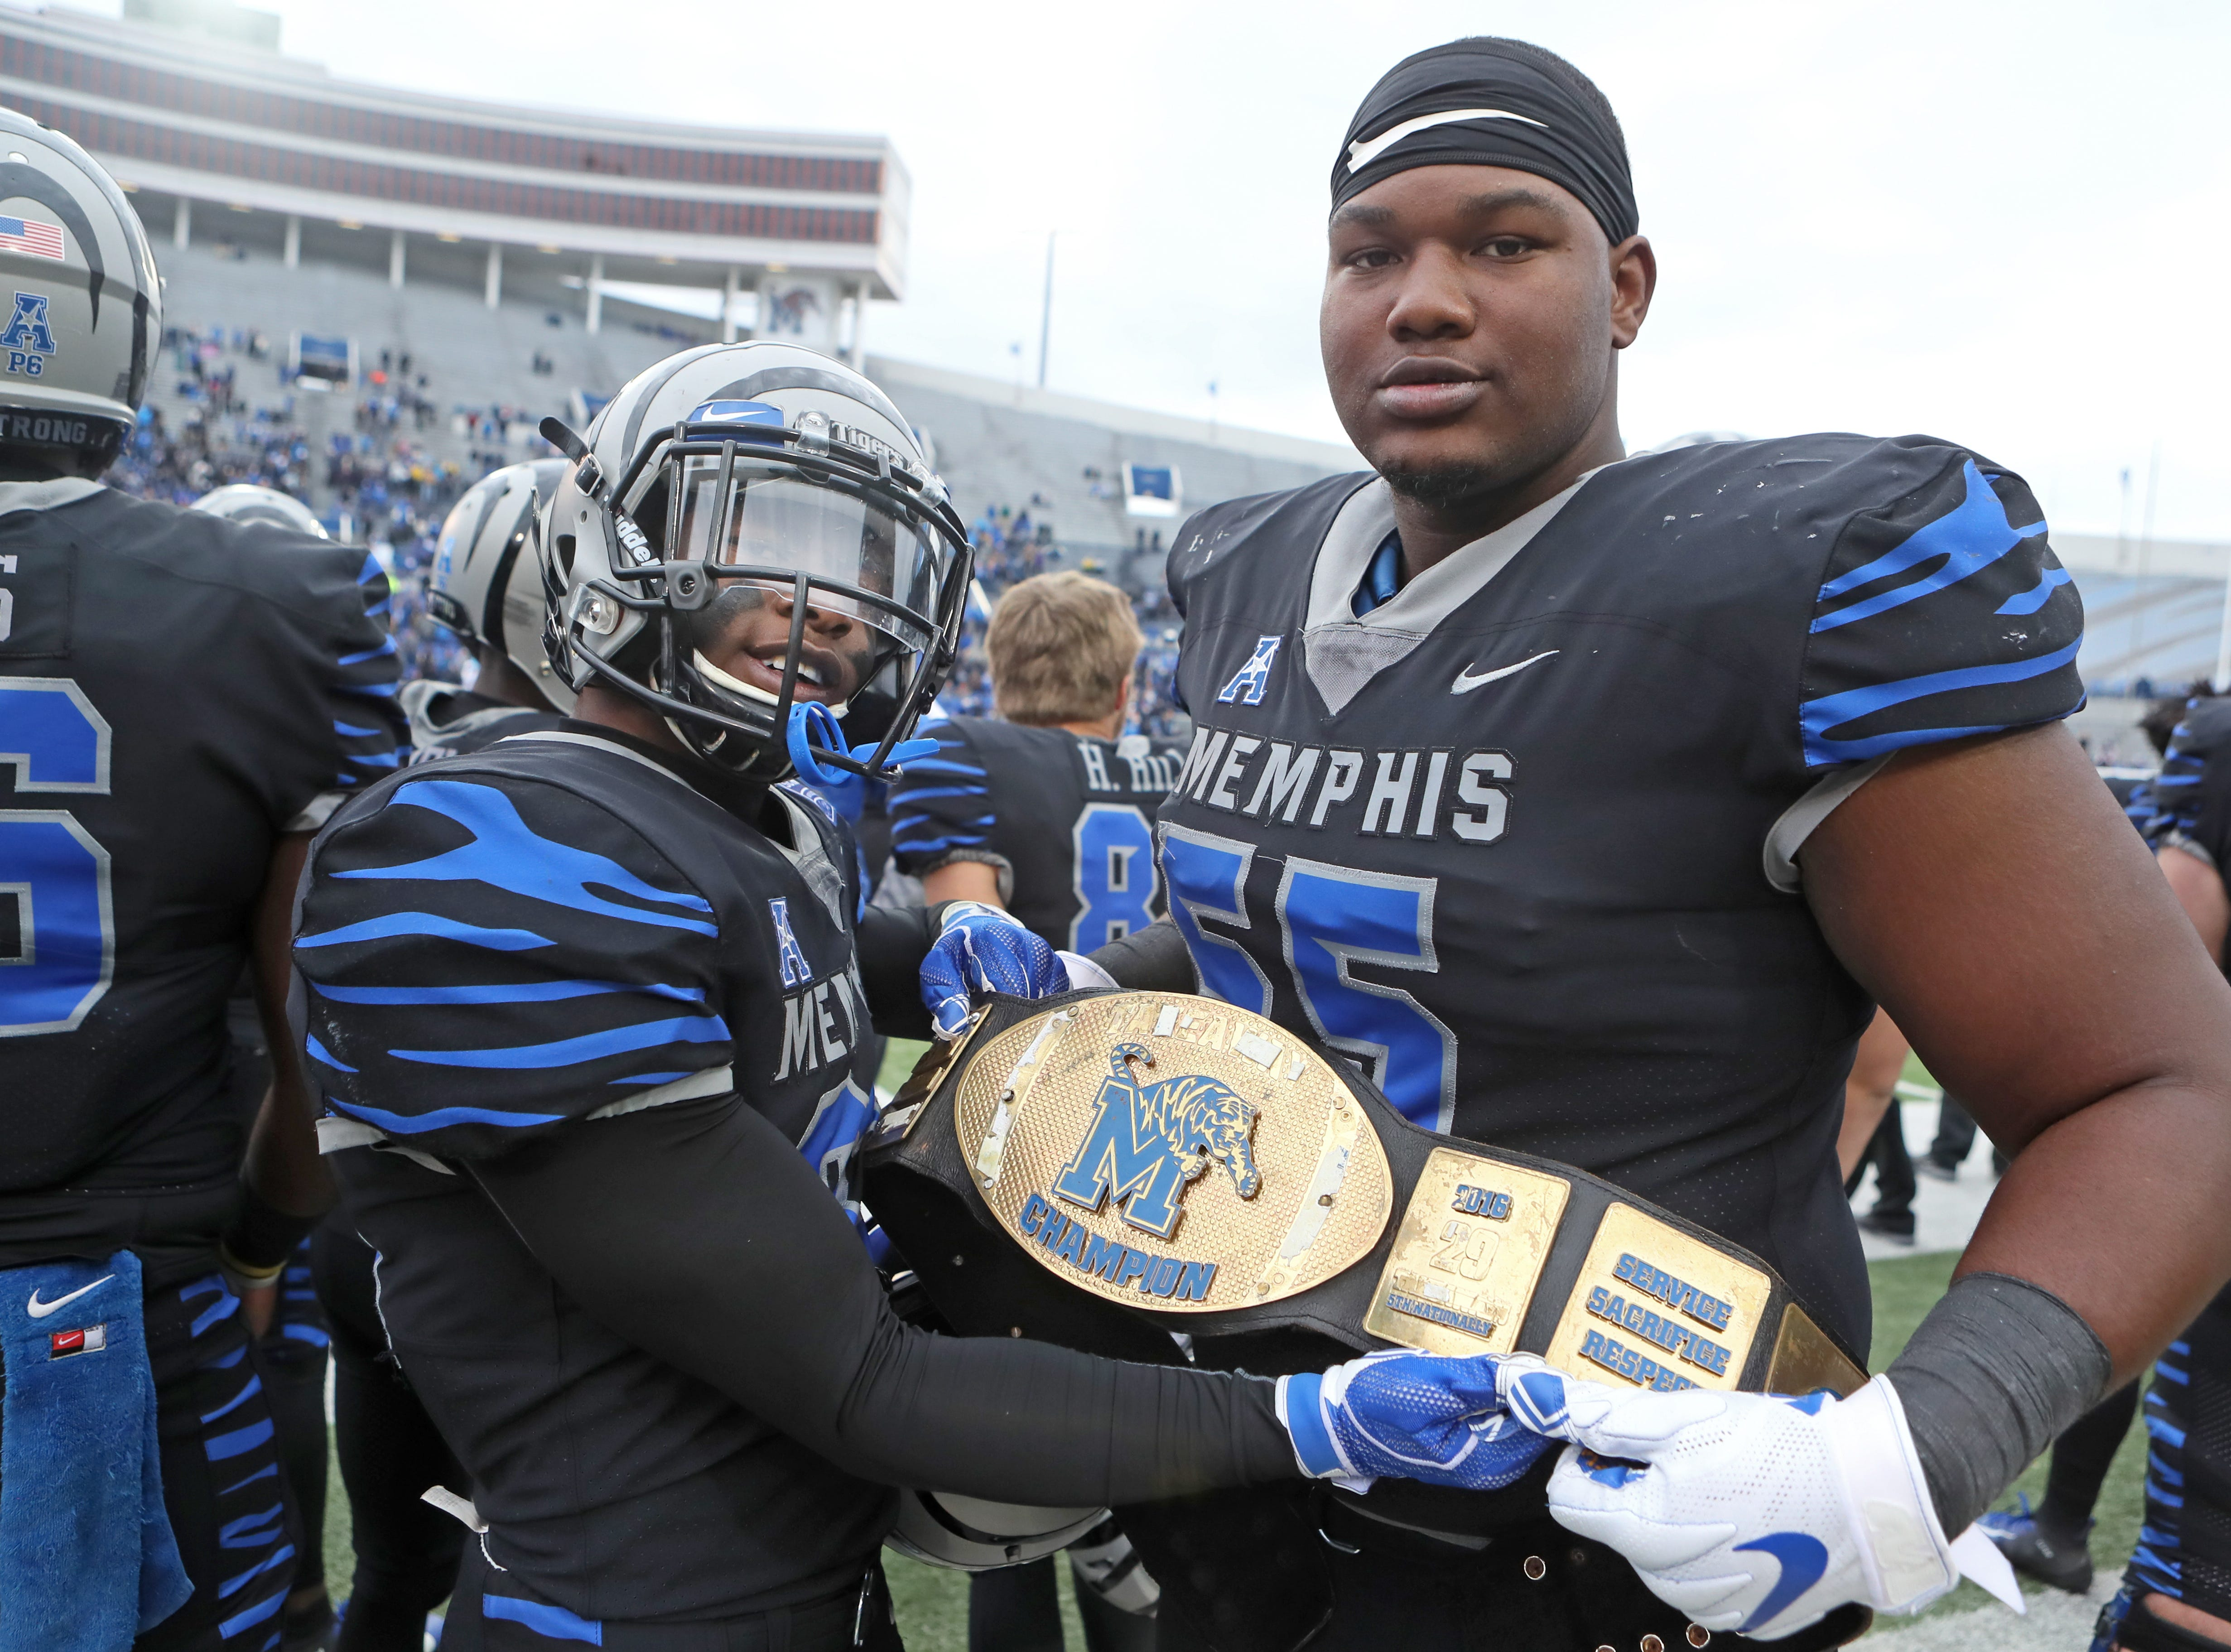 Memphis players Tamaurice Smith, left, and Mikhail Hill celebrate their title against the Houston Cougars as the Tigers win the AAC West 52-31 at the Liberty Bowl on Friday, Nov. 23, 2018.